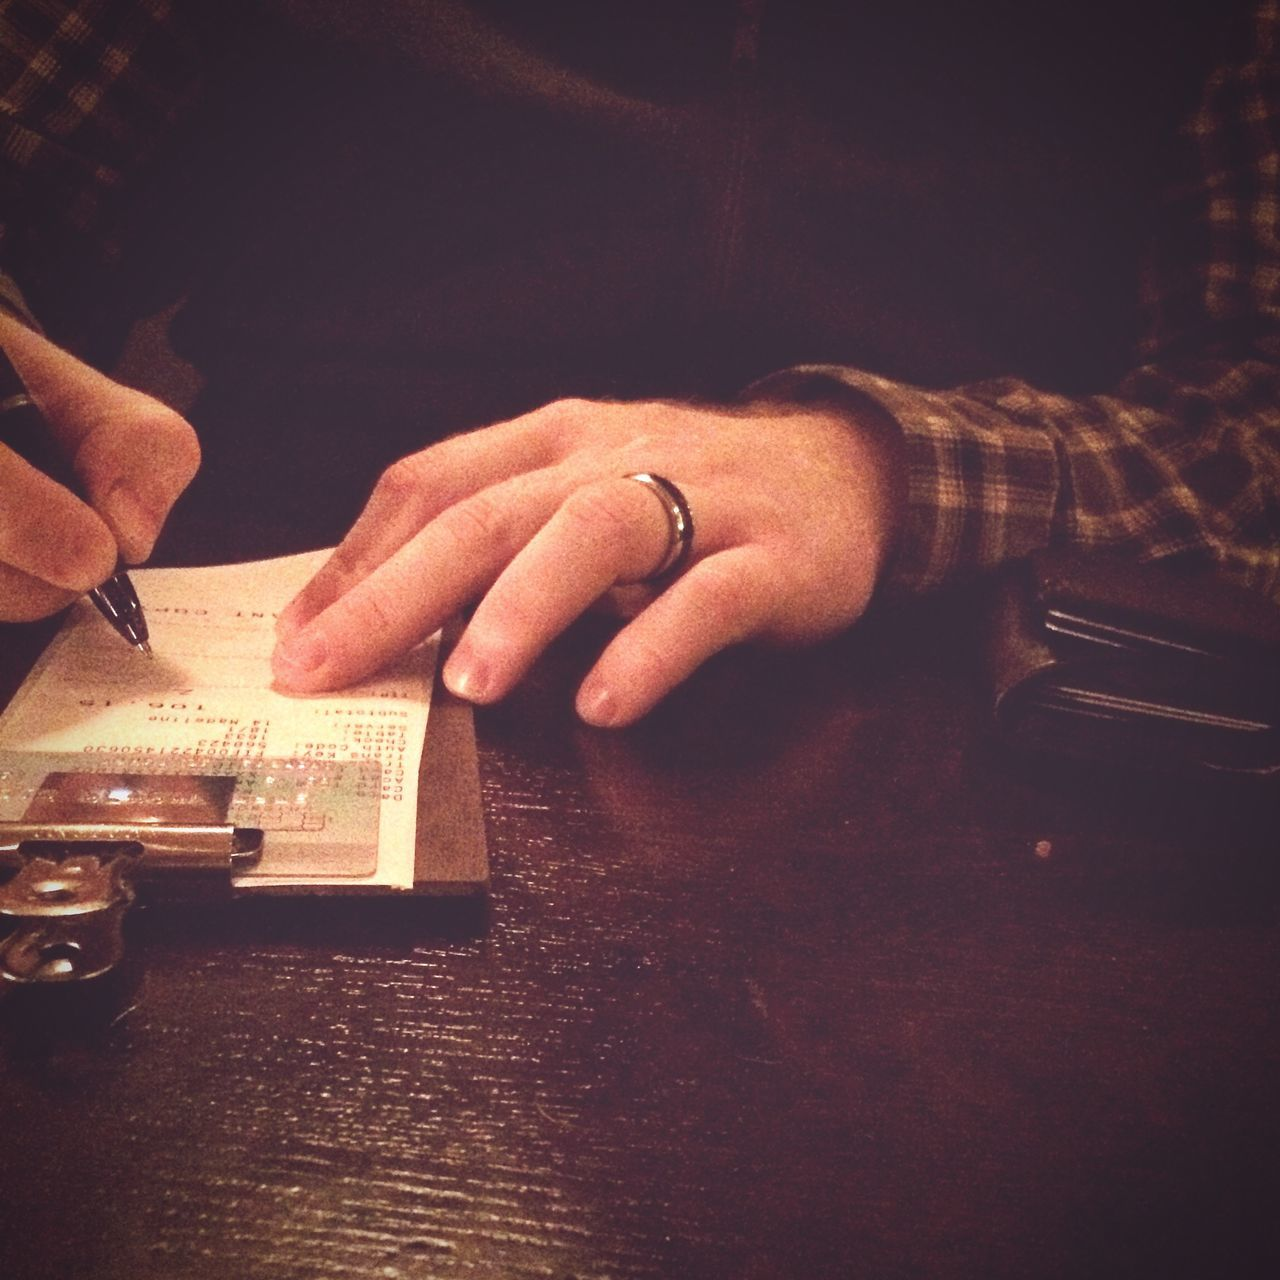 Cropped Hand Signing Credit Card Bill On Table At Restaurant